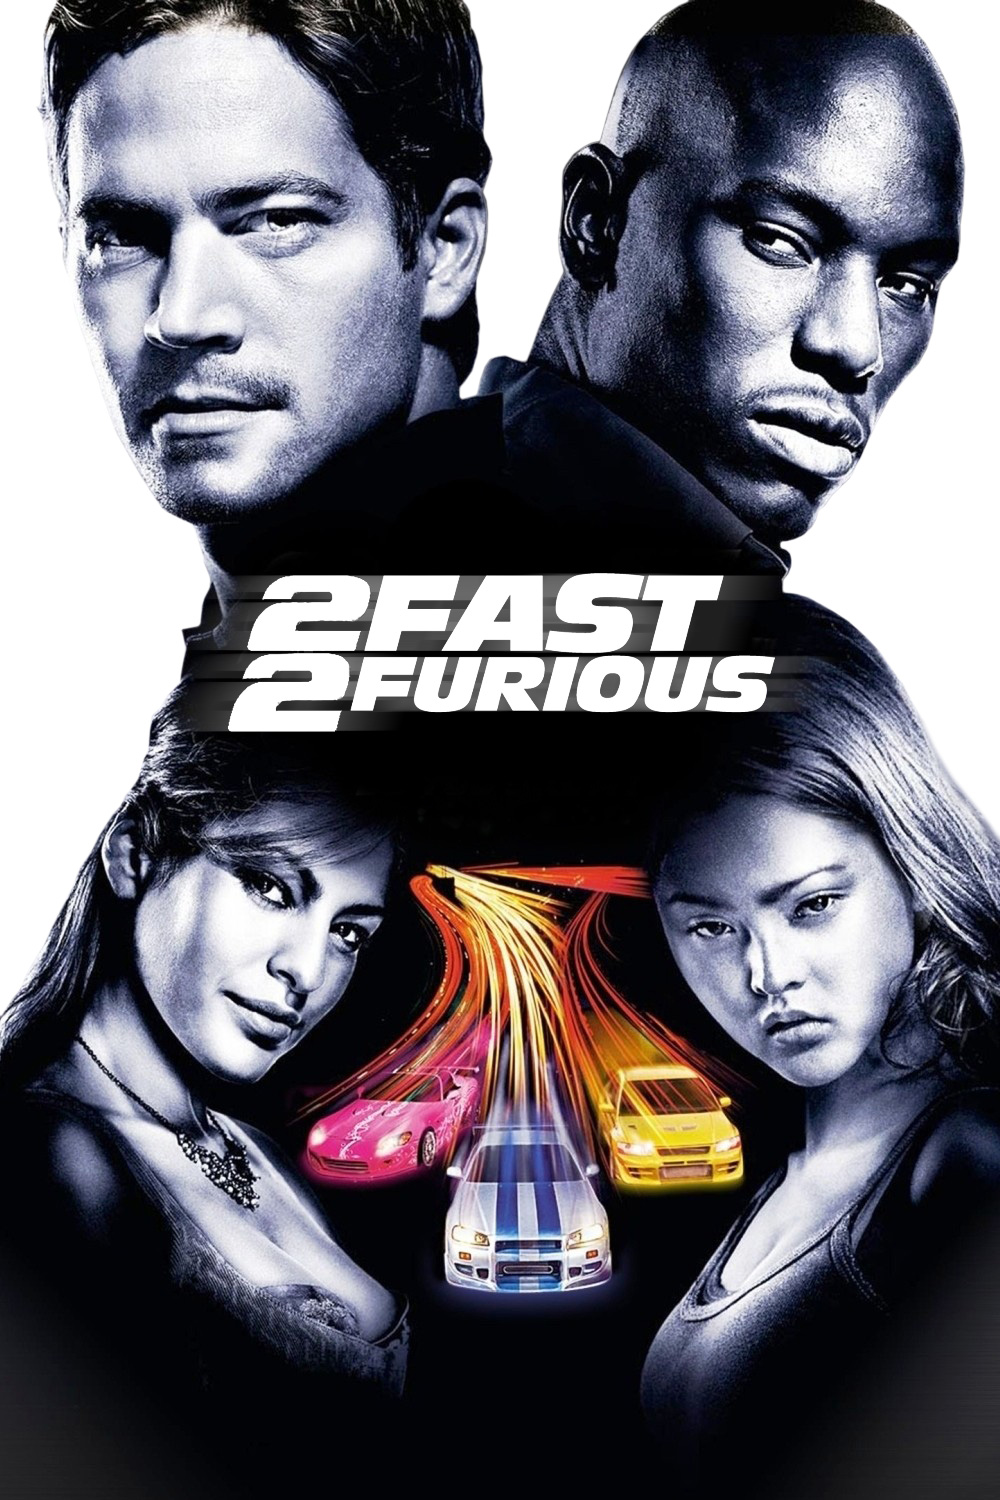 Characters Leaving Only The Shallow Dull Ones Move It To Miami And Insert An Undercover Drug Bust Storyline There We Have 2 Fast Furious